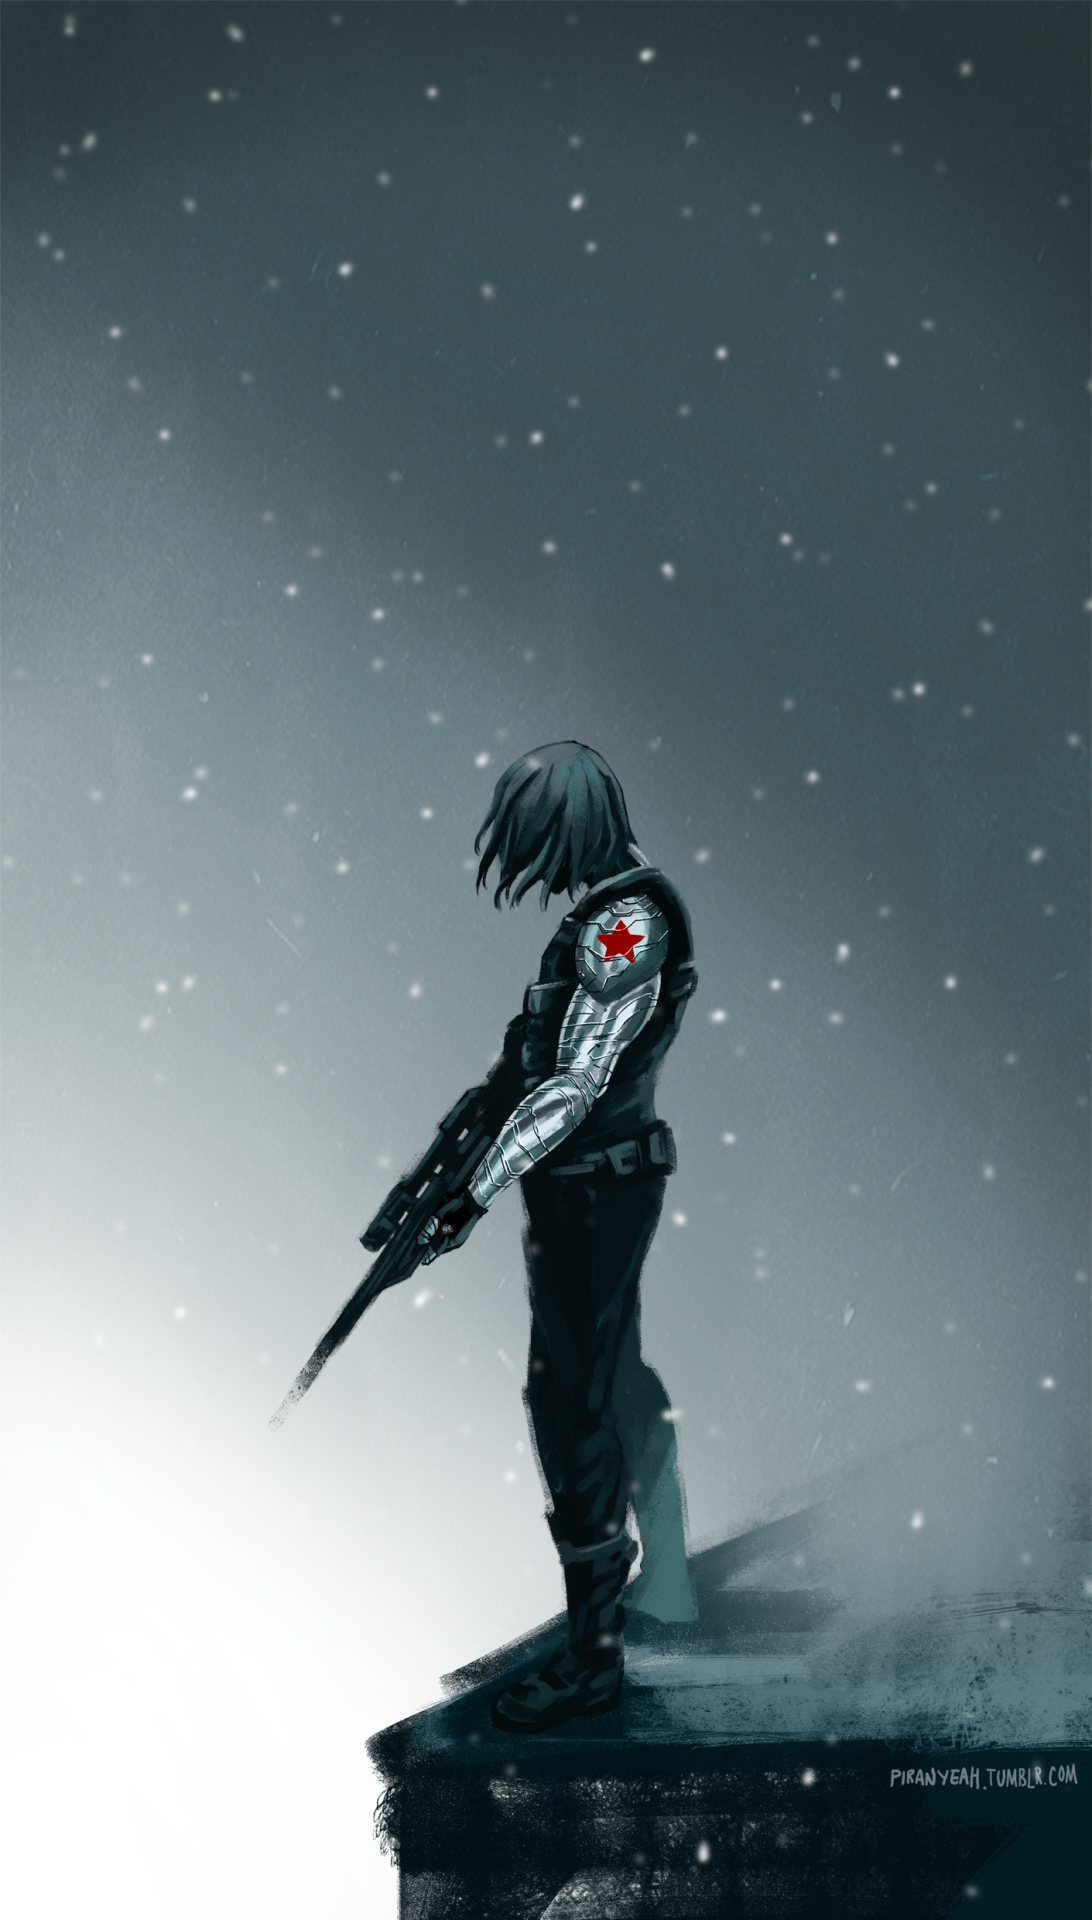 16+ The Winter Soldier Wallpaper Tumblr